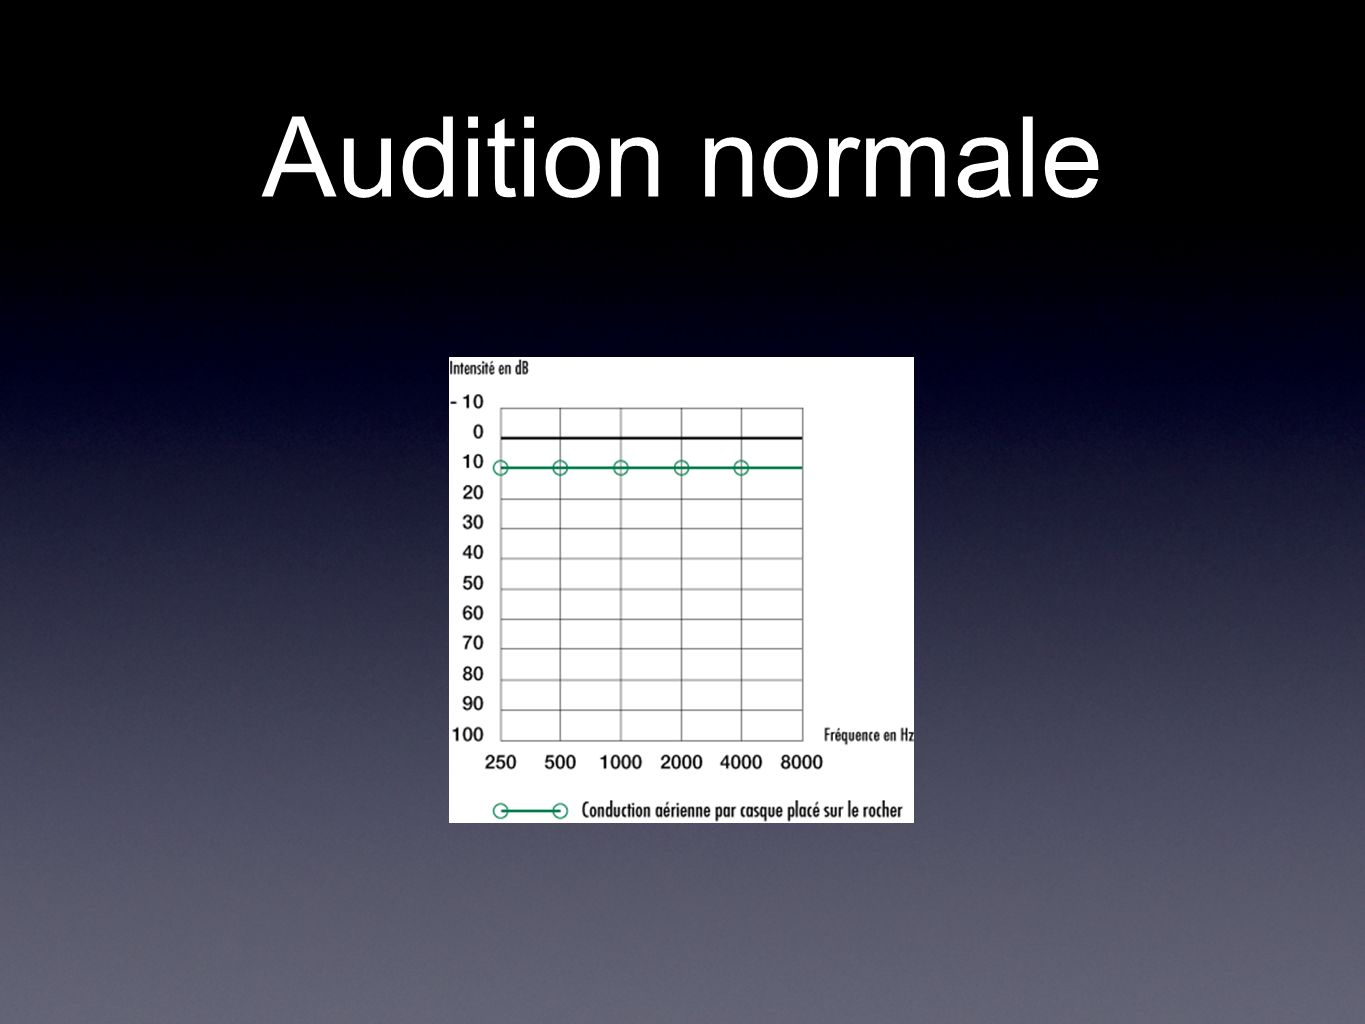 Audition normale